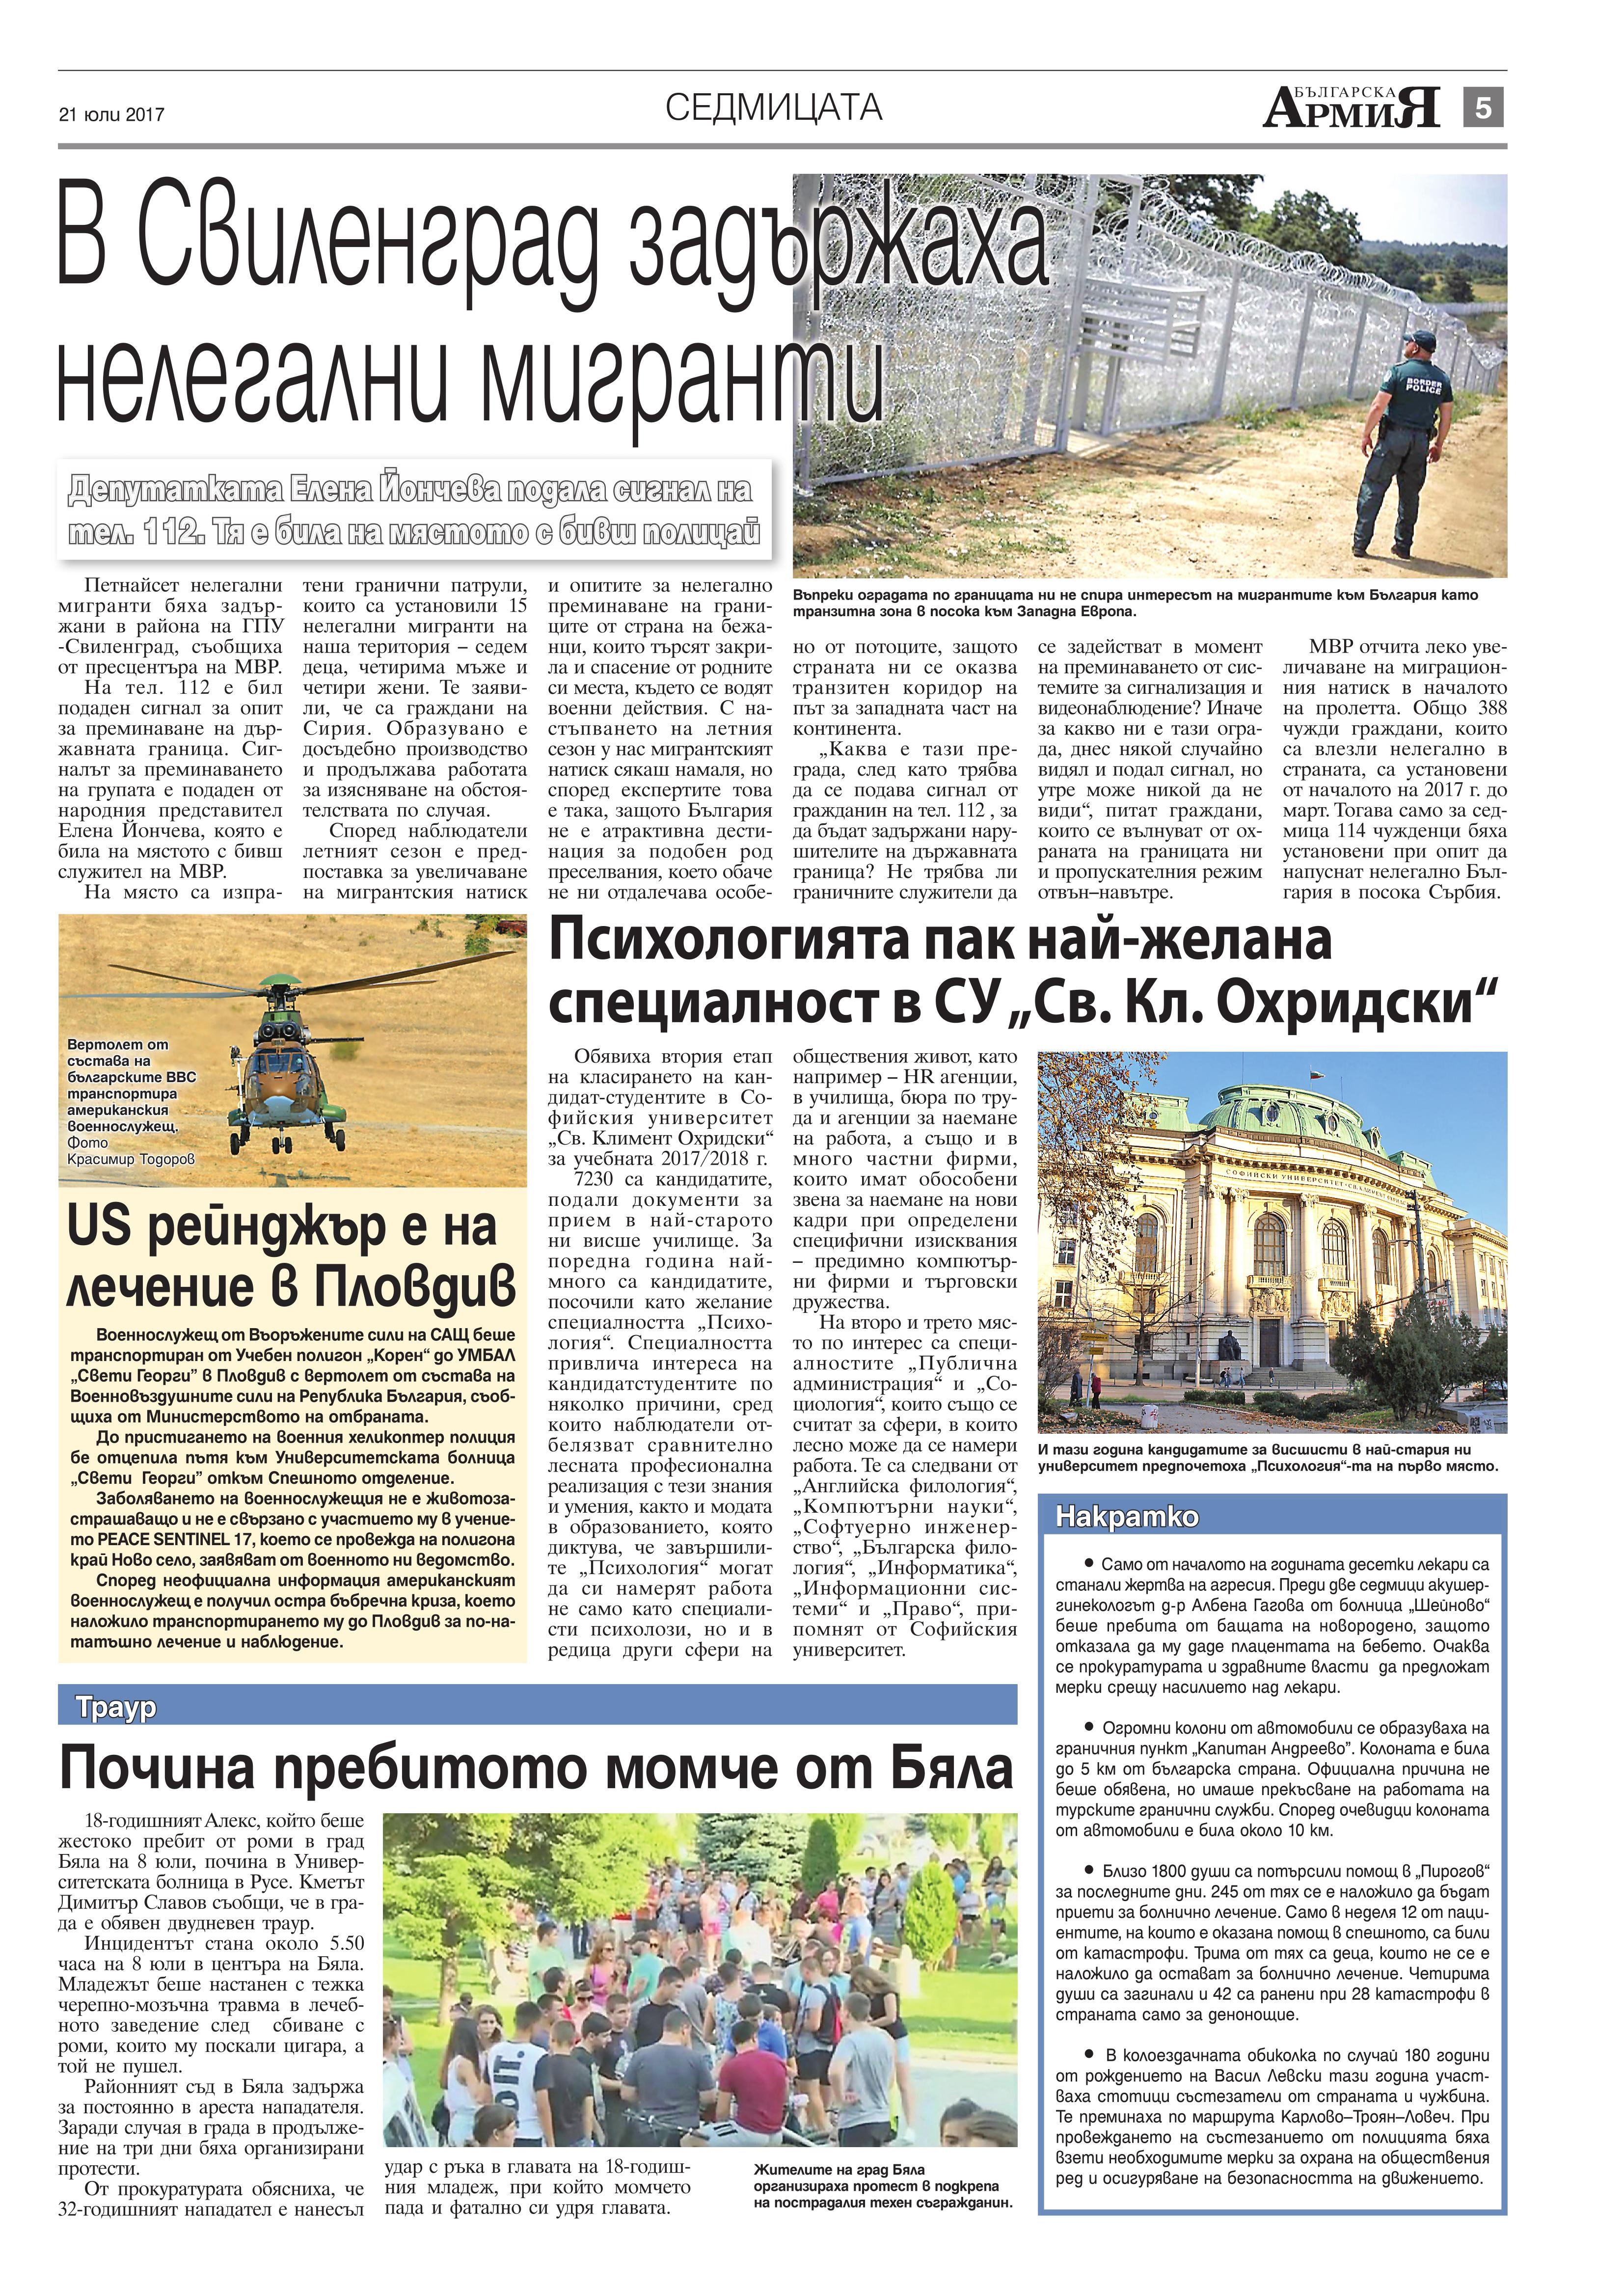 https://www.armymedia.bg/wp-content/uploads/2015/06/05.page1_-26.jpg